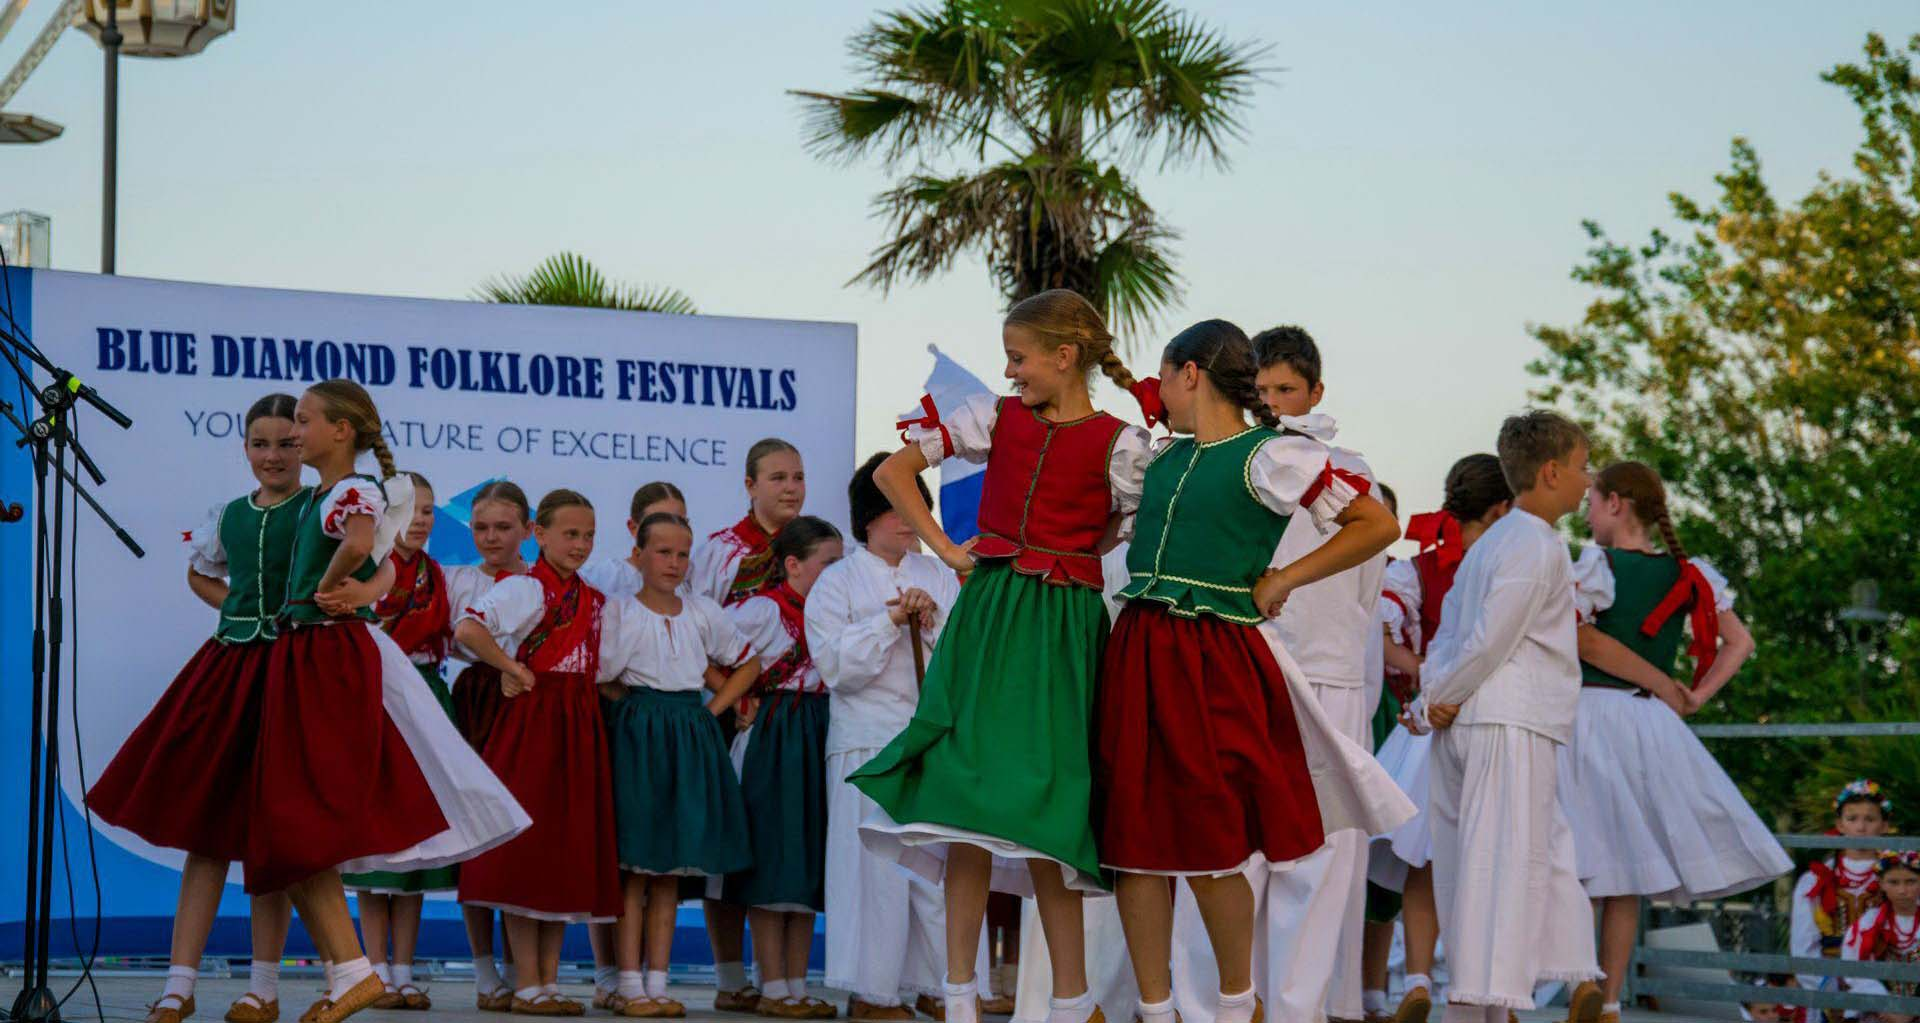 V Folklore festival Cesenatico - Rimini HIGHLIGHTS 2019 - Folklore festivals Blue Diamond